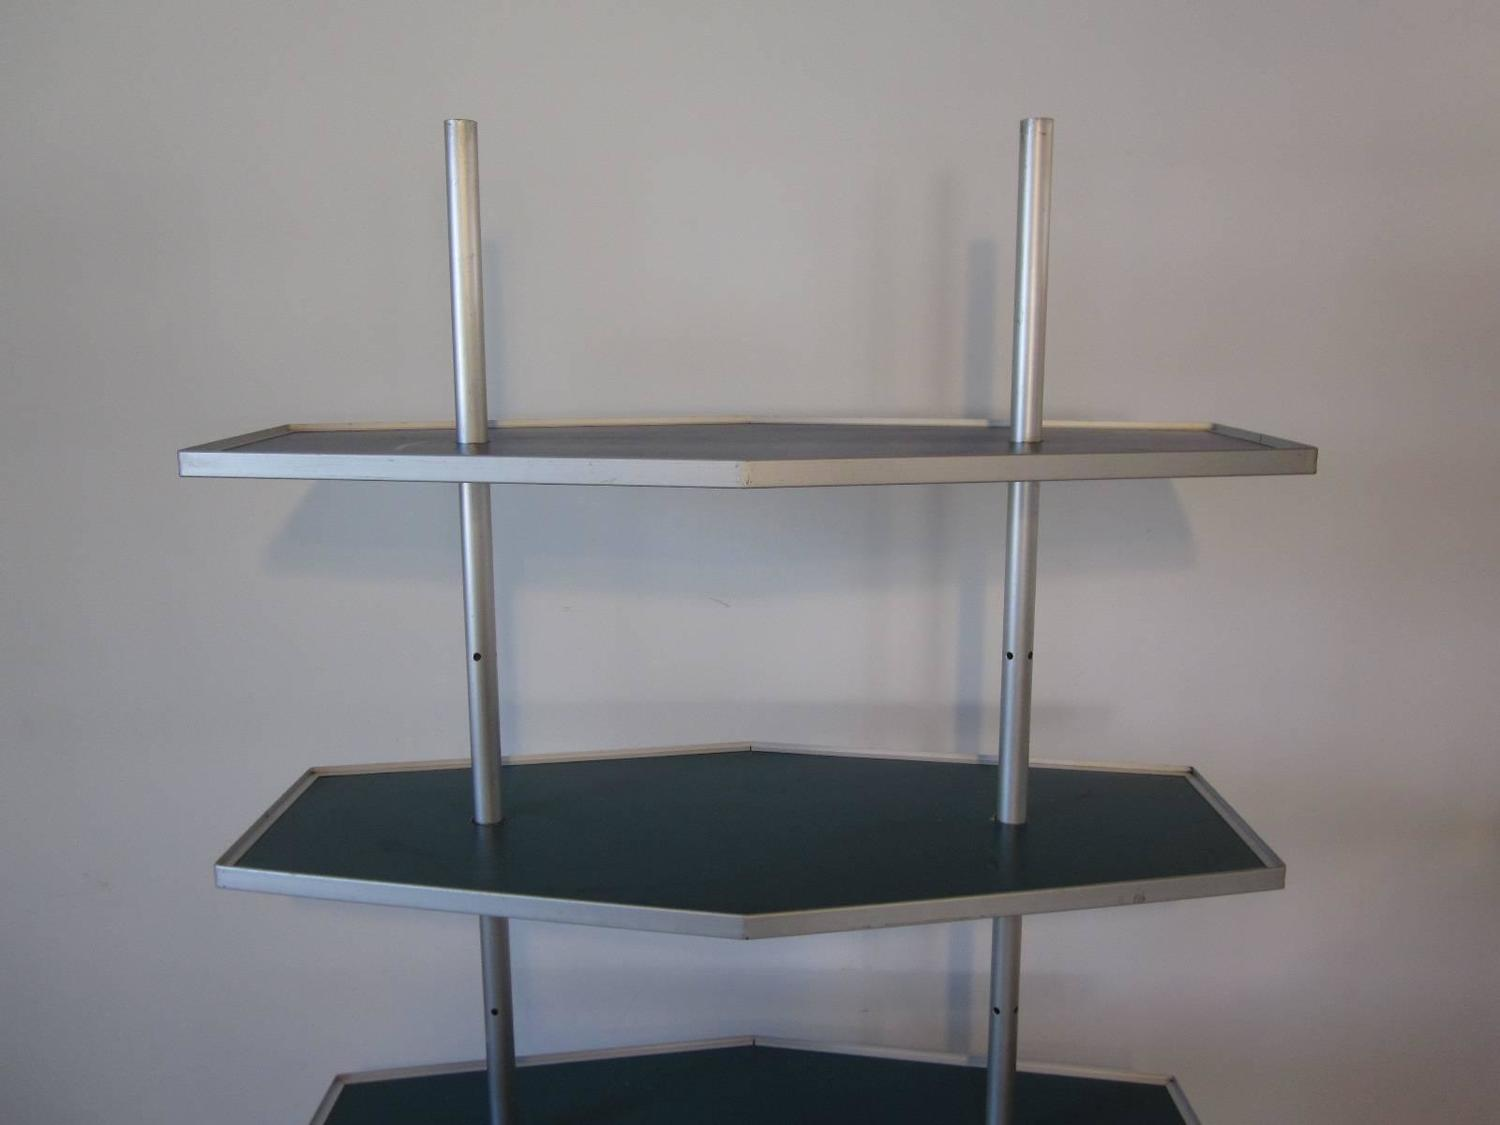 Mid-Century Modern Industrial Shelving Unit For Sale at 1stdibs